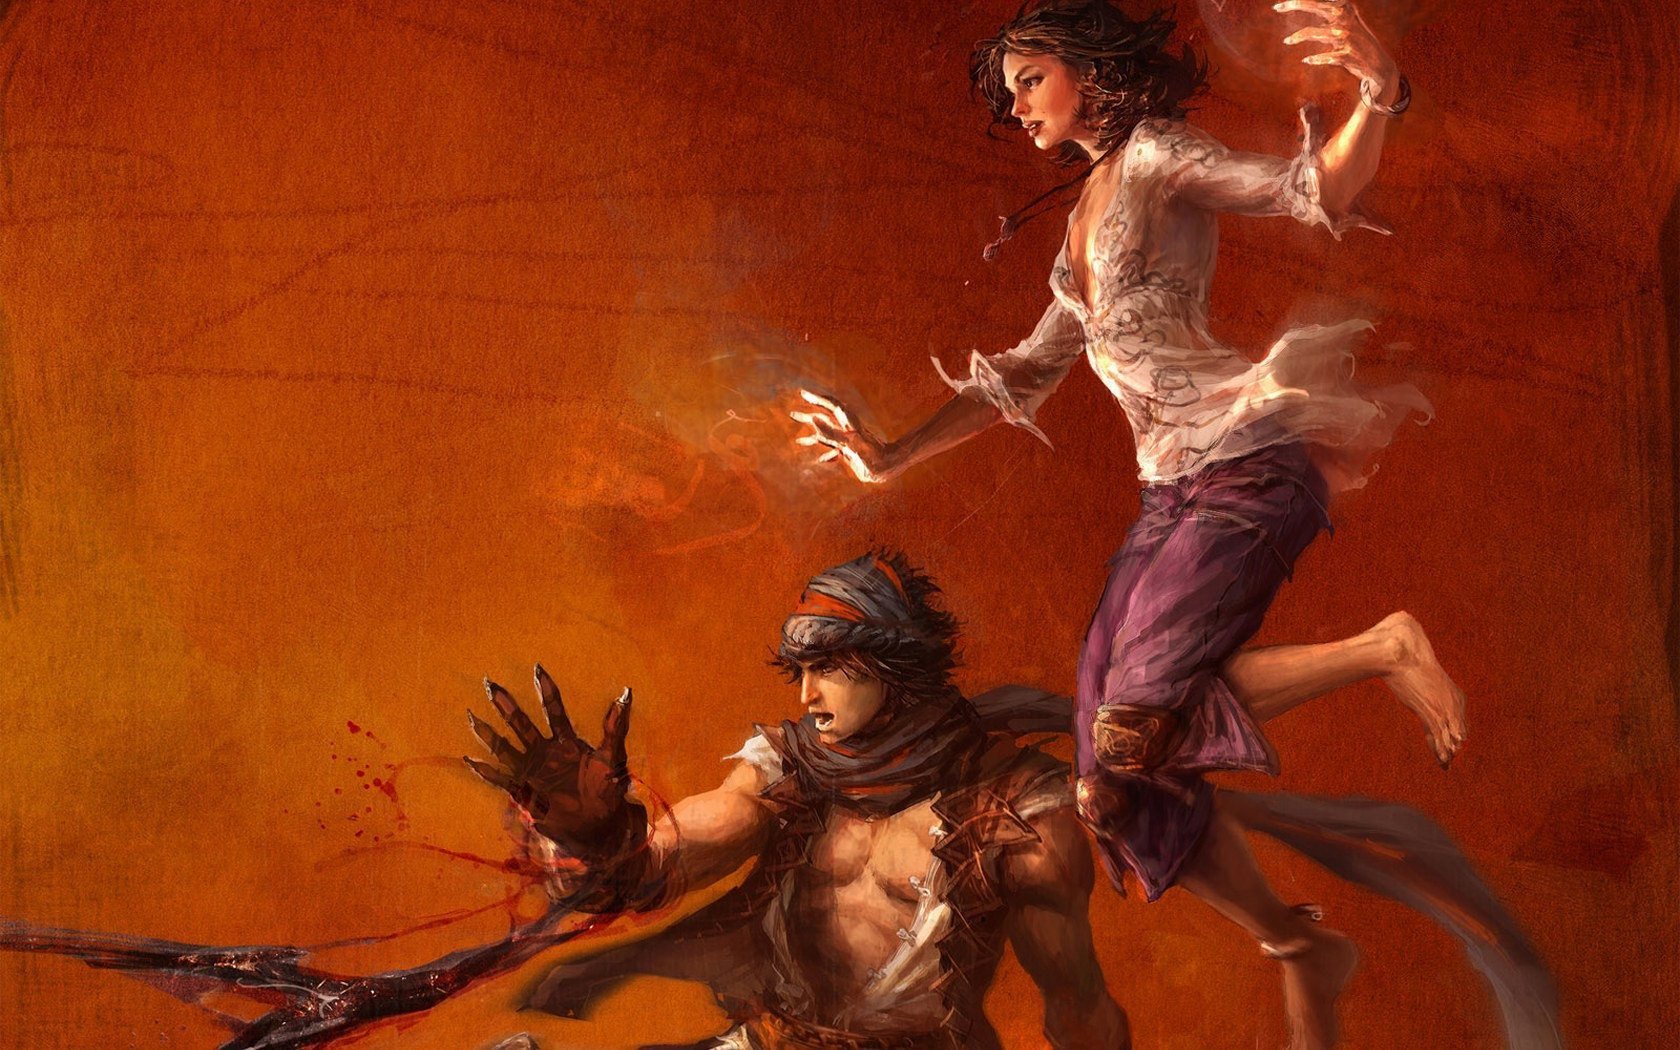 prince of persia game wallpapers - wallpaper world